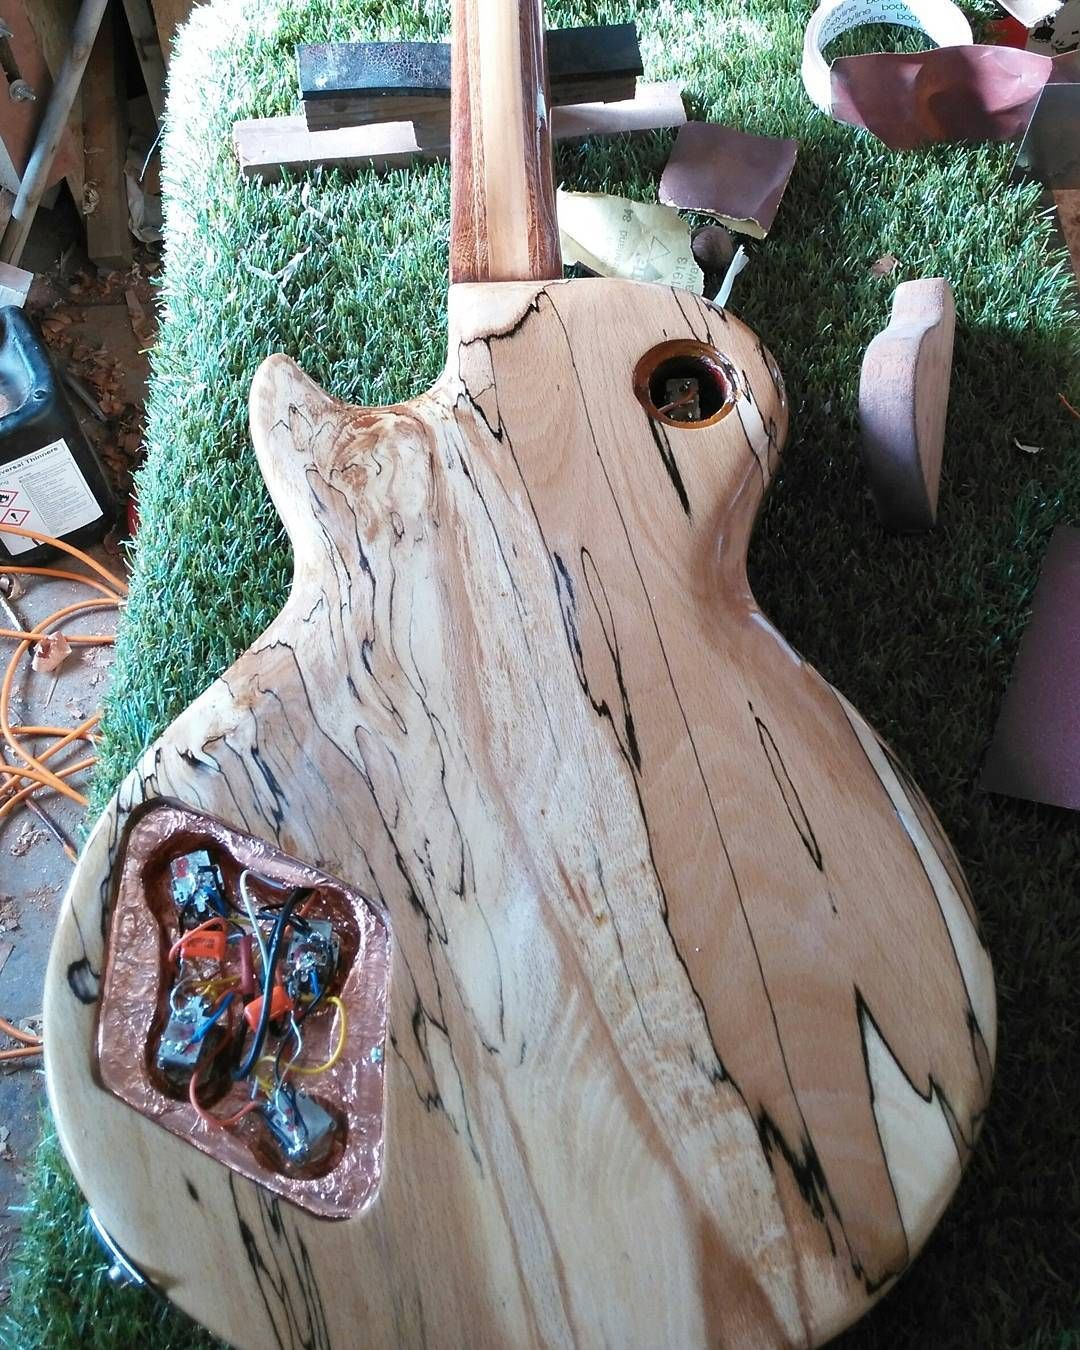 Bear Wood Porn and the back. magnetic pickup covers (which i cant find